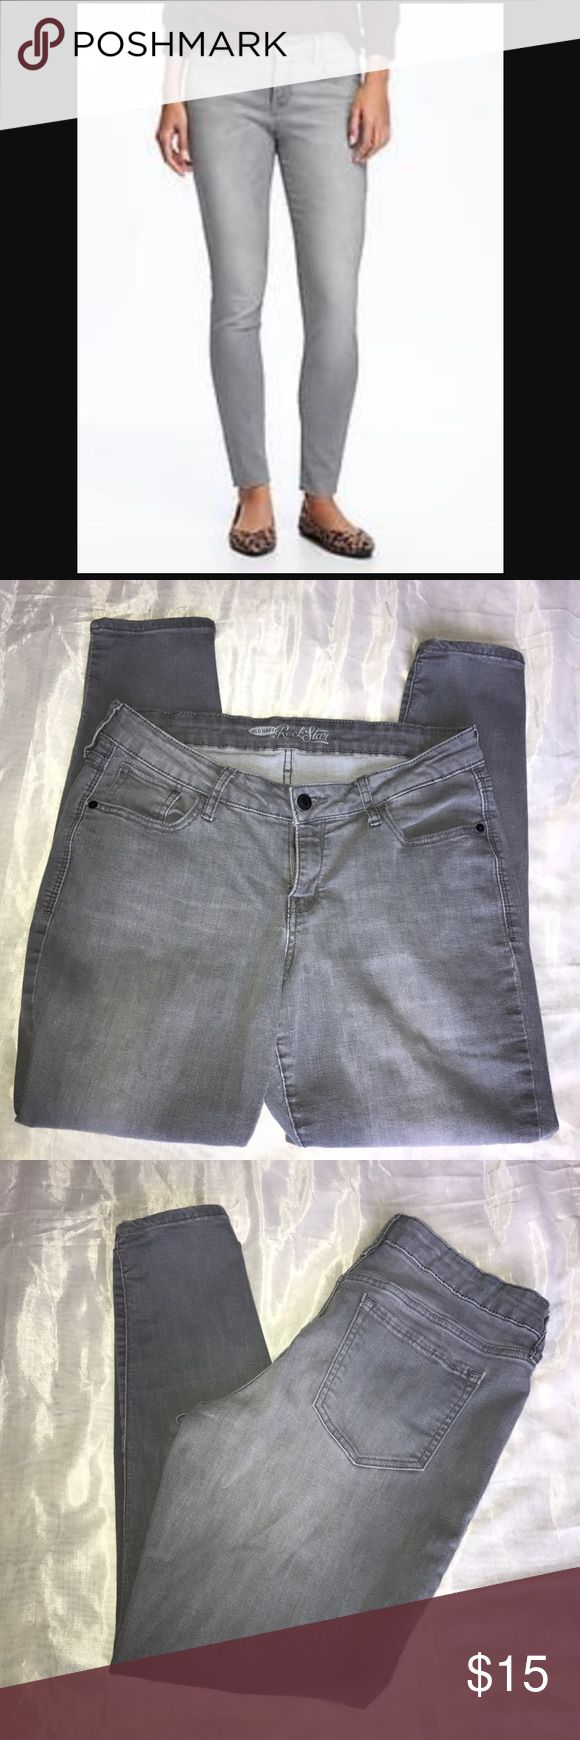 SALE!!! Old Navy grey rockstar jeans Old Navy grey rockstar jeans/ size 14 regular/ good condition/ small wear and tear by inseam. Old Navy Jeans Skinny